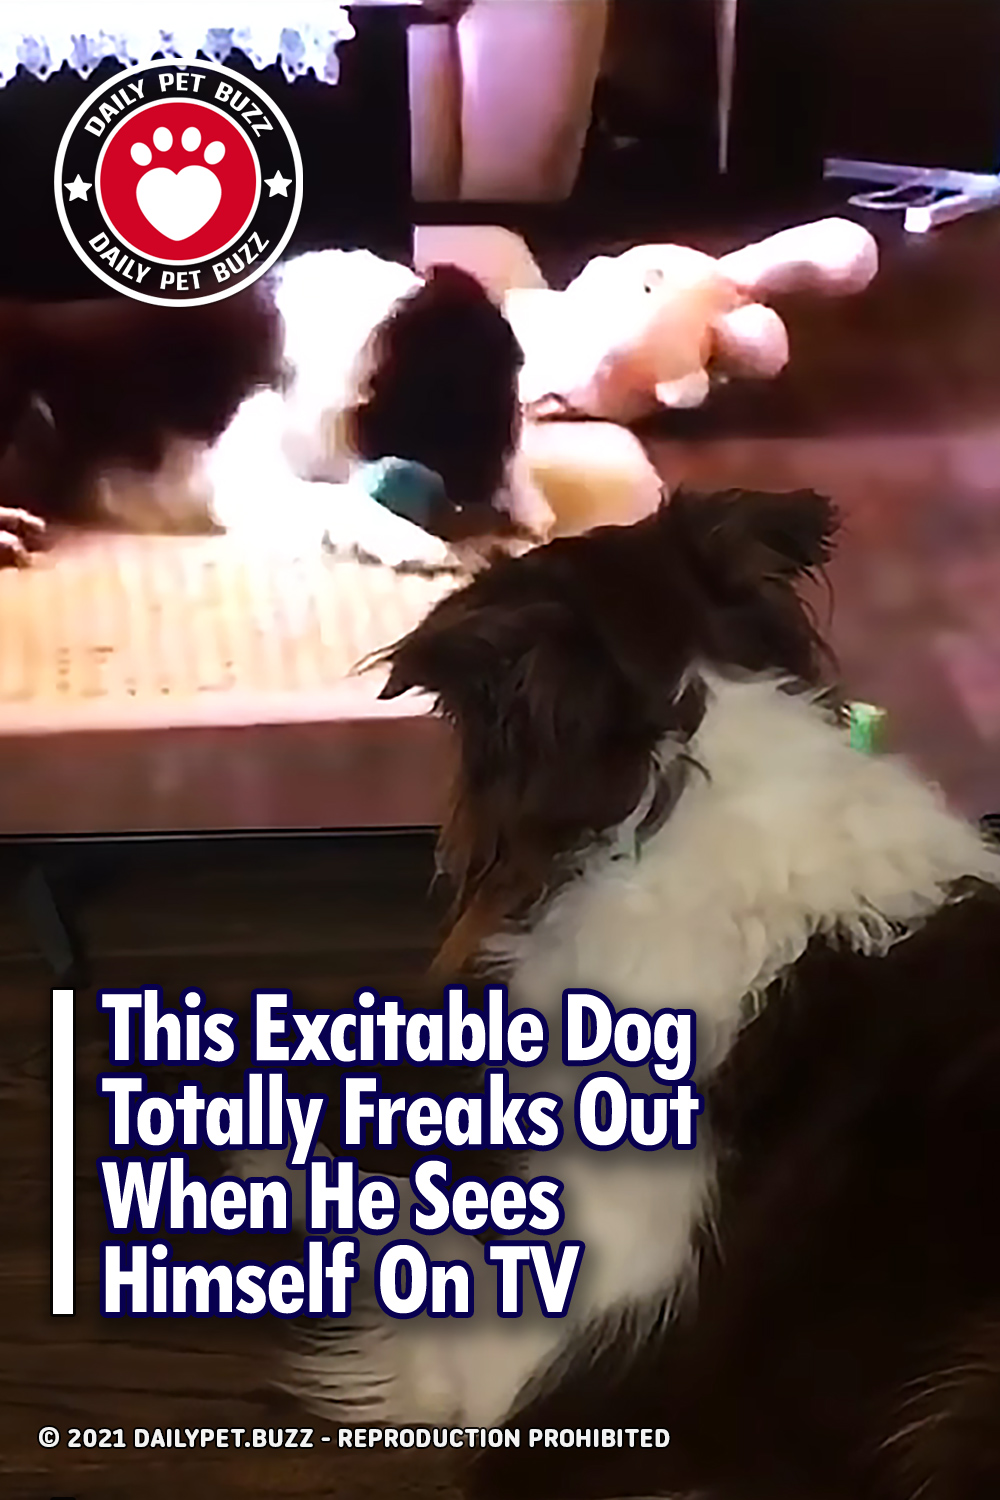 This Excitable Dog Totally Freaks Out When He Sees Himself On TV